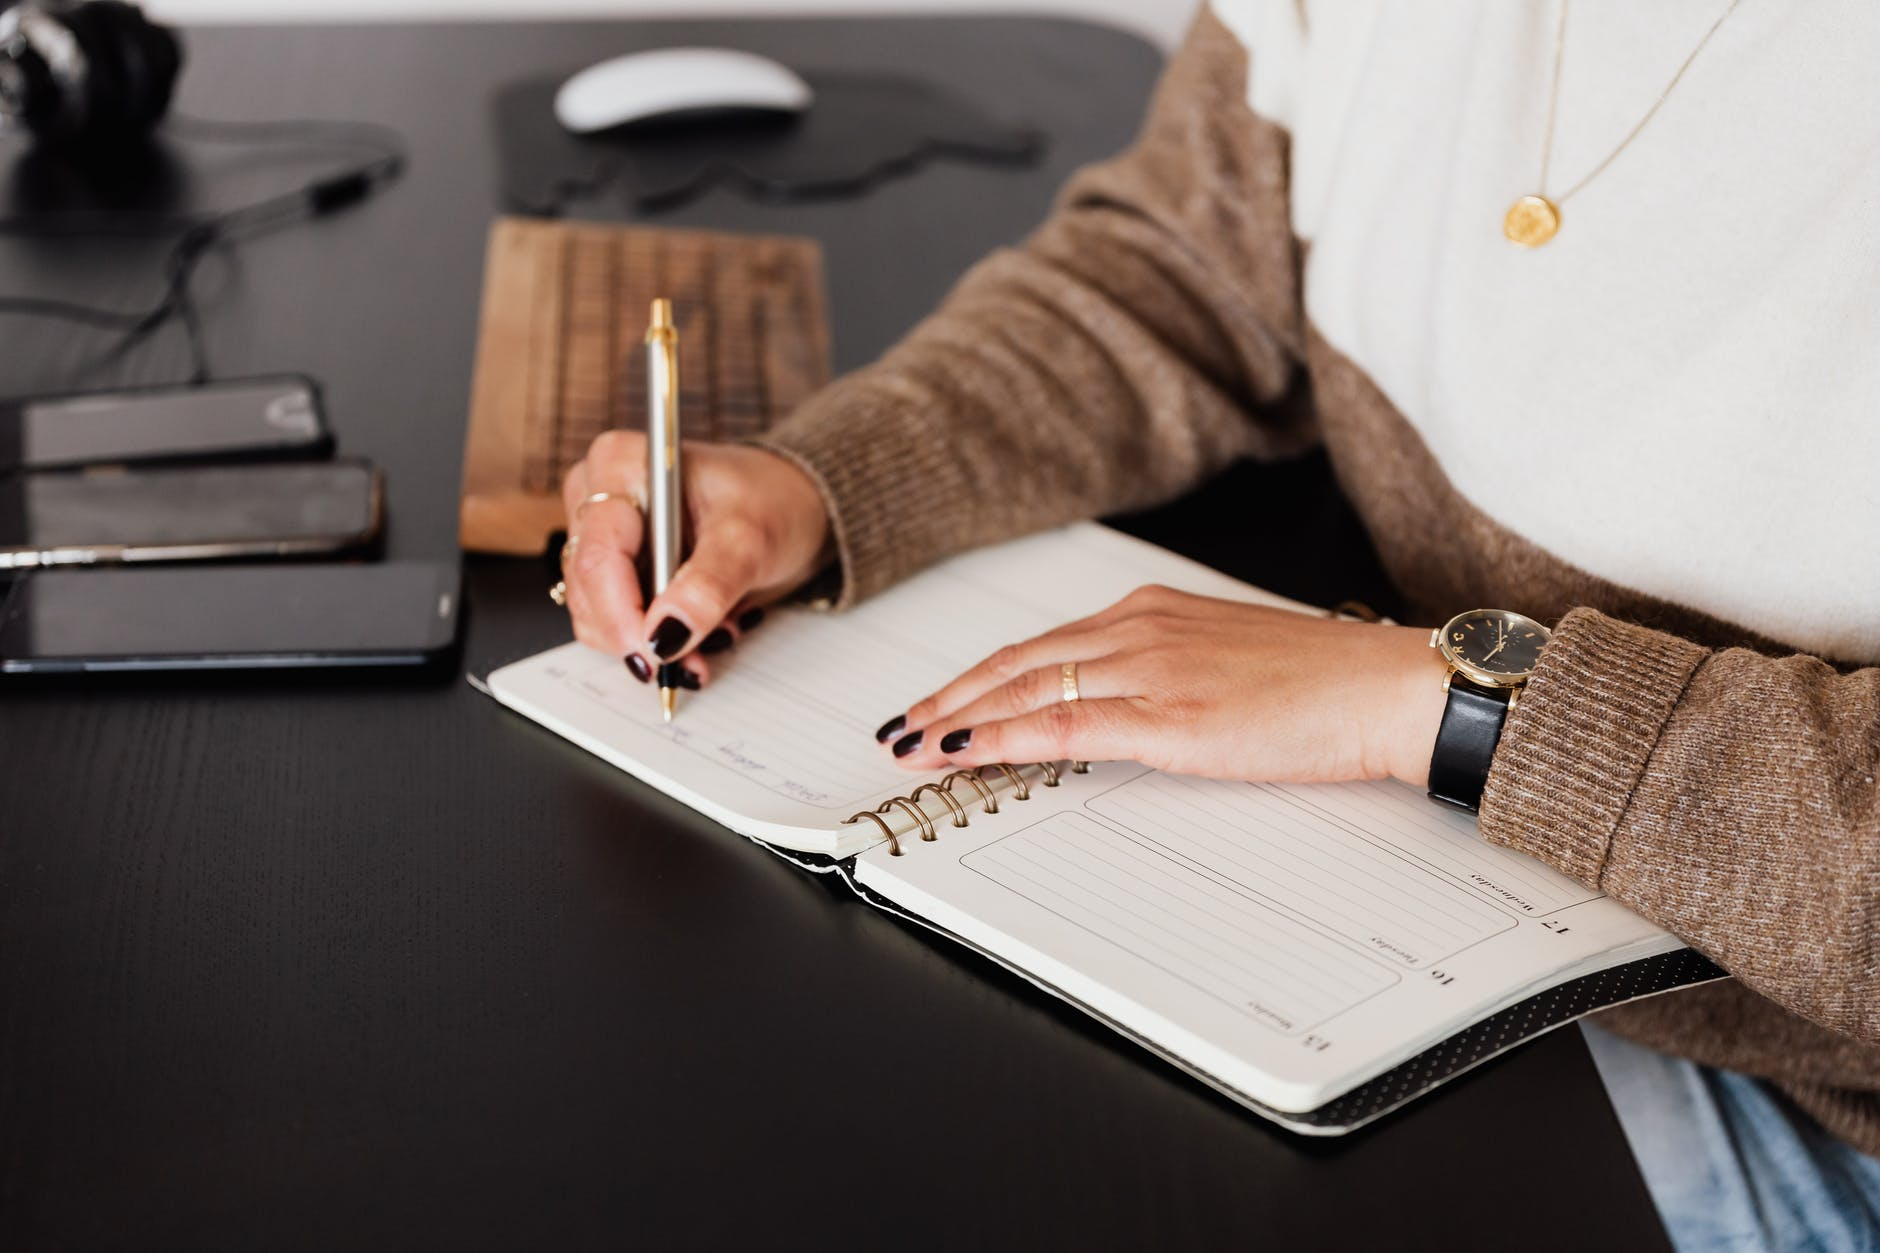 crop stylish woman taking notes in notebook